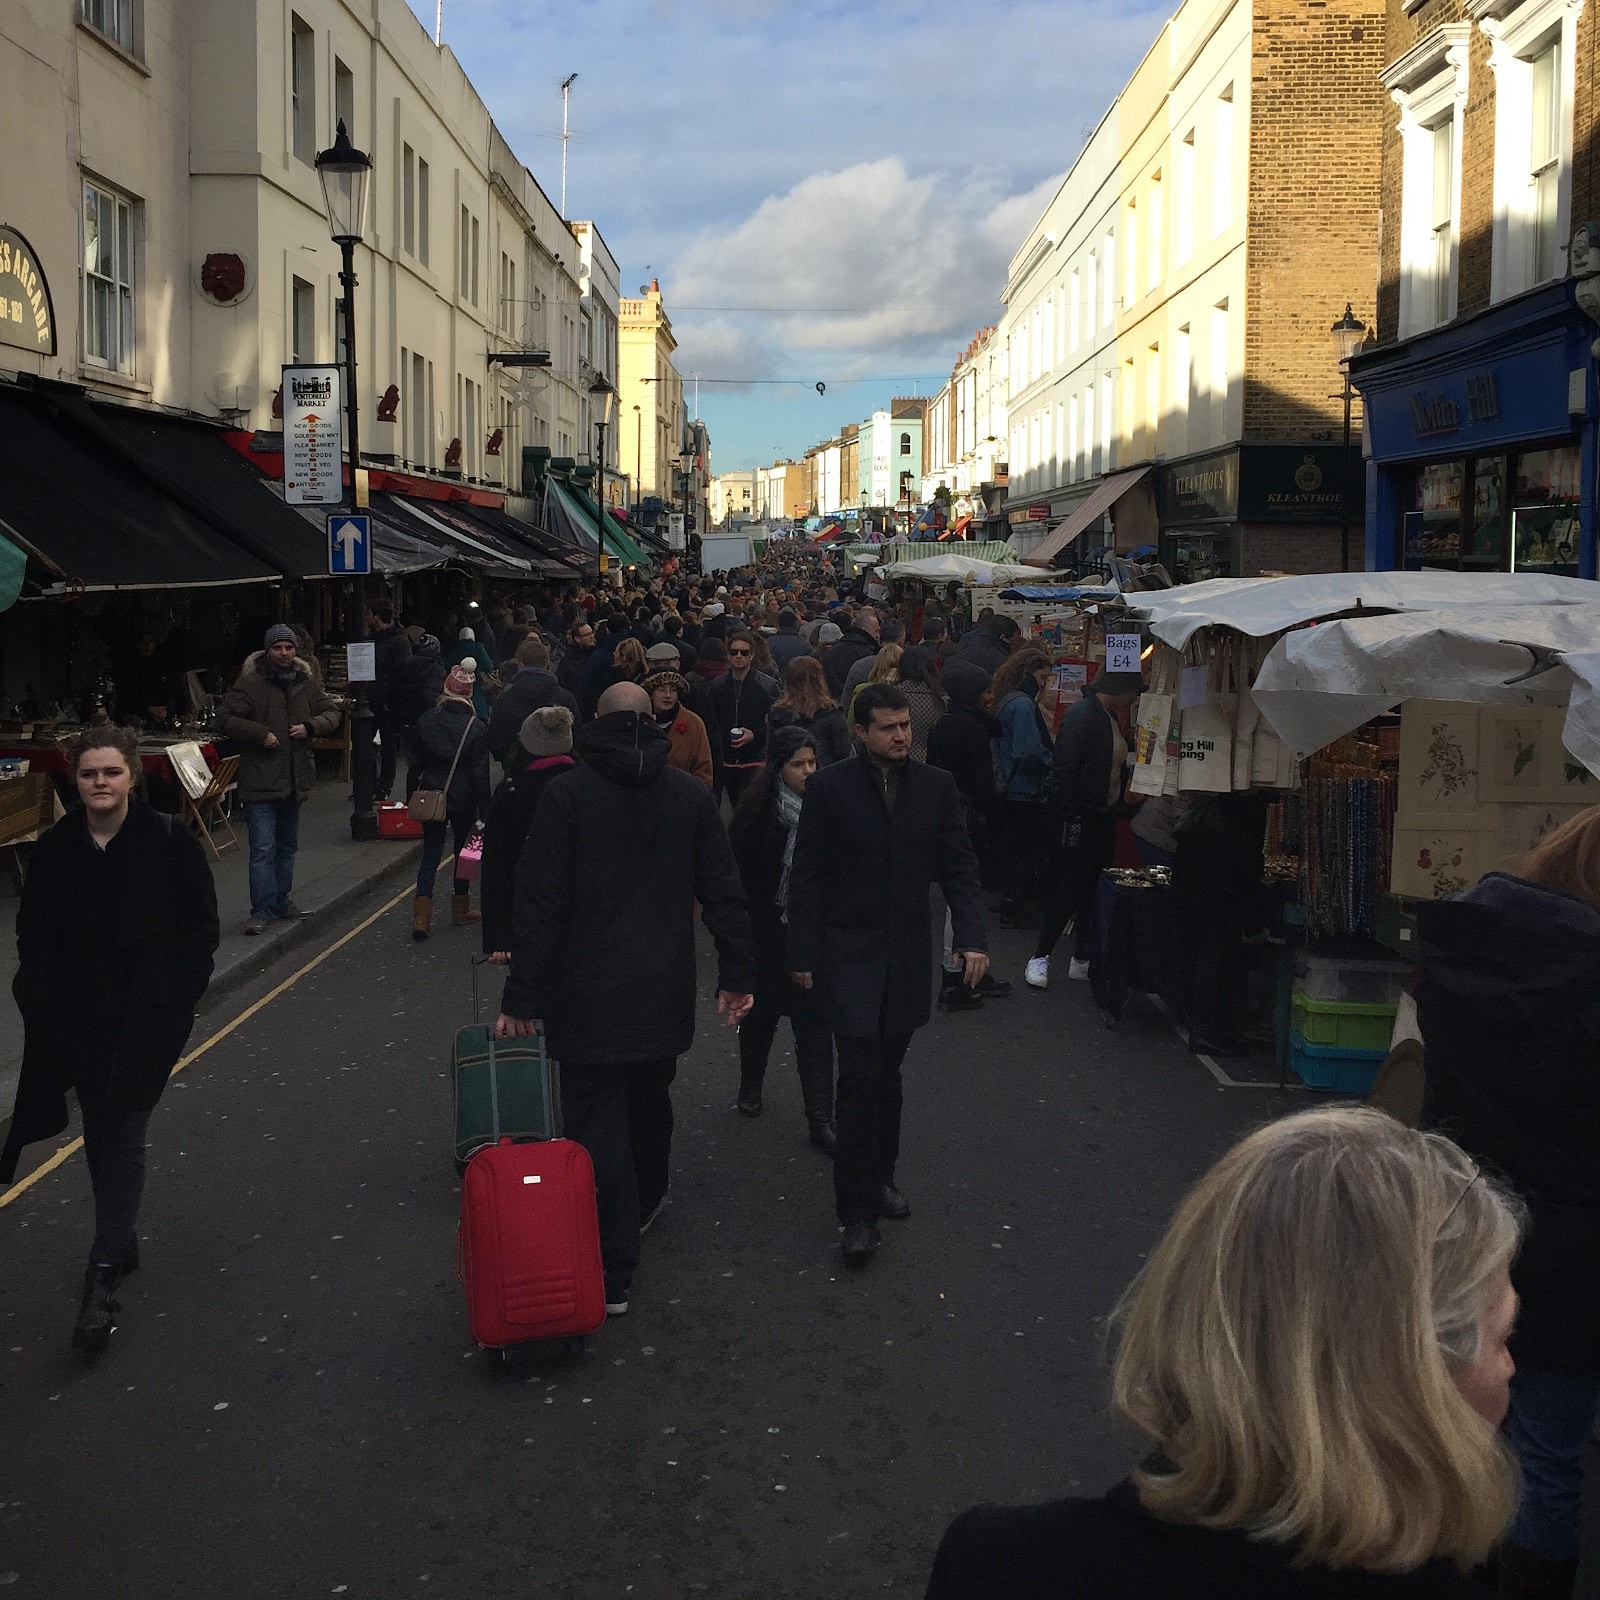 I can't even imagine how crowded the Portobello Market must be in the summer. I would had living near this.